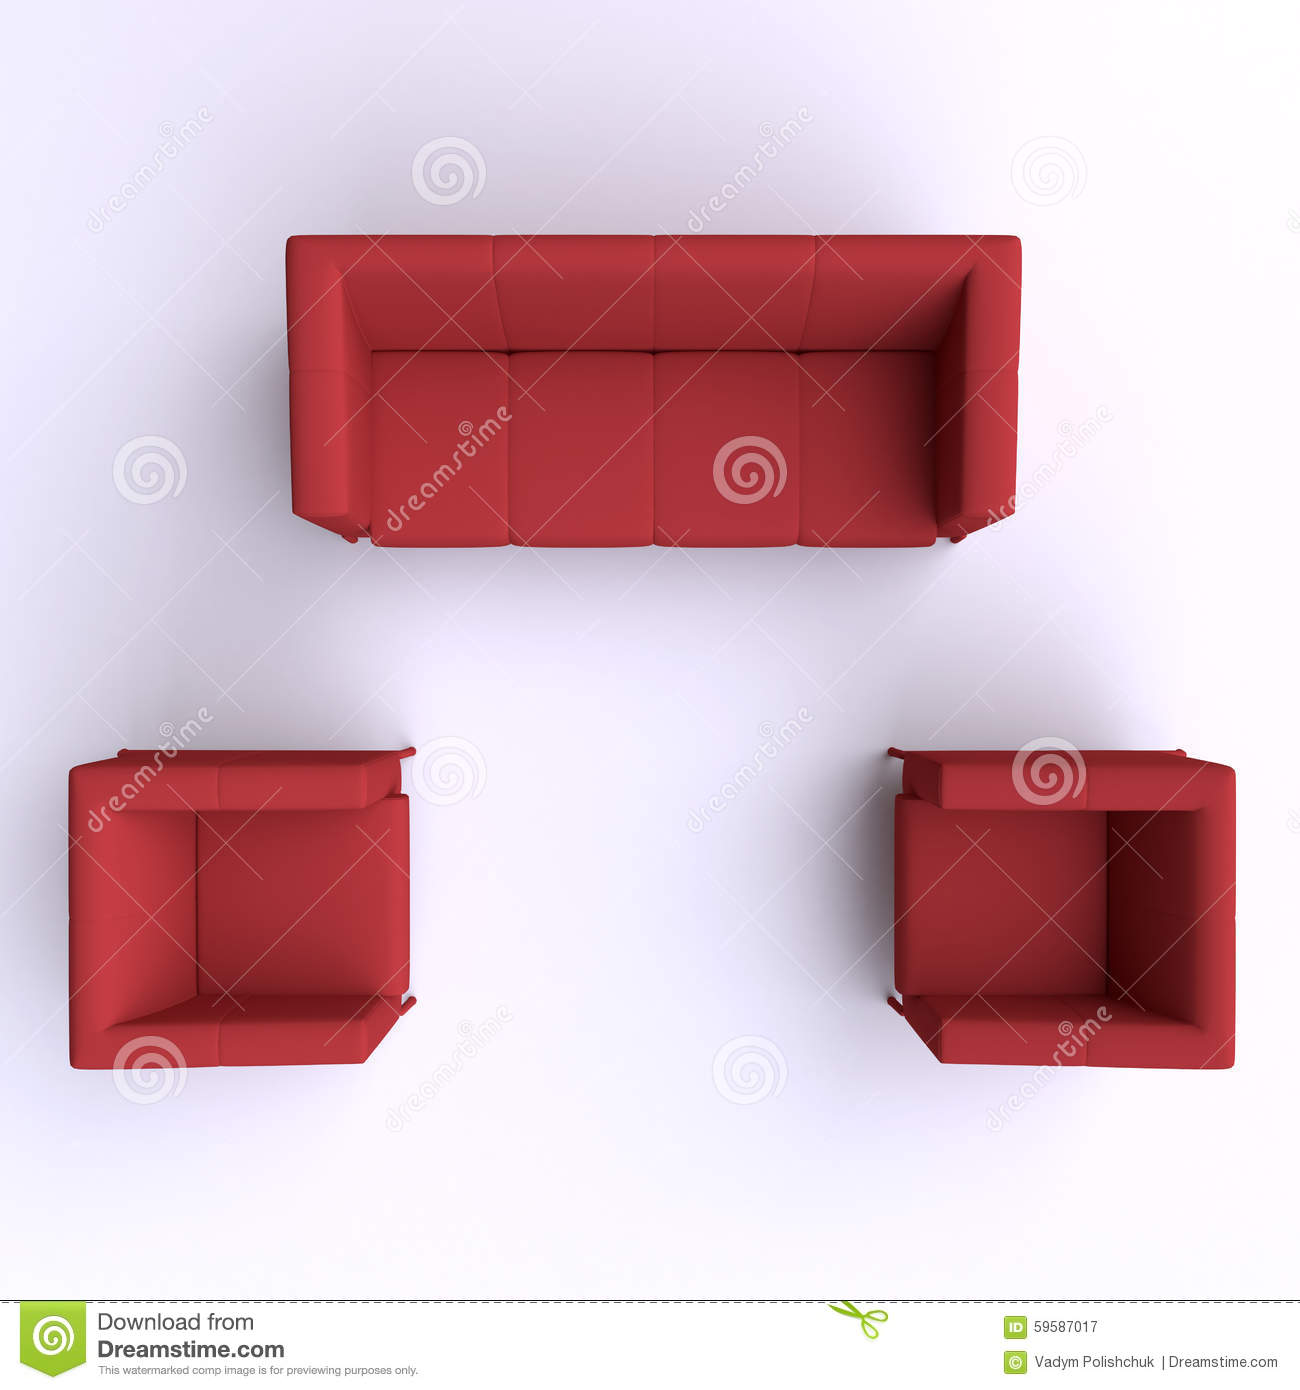 Sofa And Two Chairs Top View Stock Illustration Image  : sofa two chairs top view d illustration 59587017 from www.dreamstime.com size 1300 x 1390 jpeg 86kB